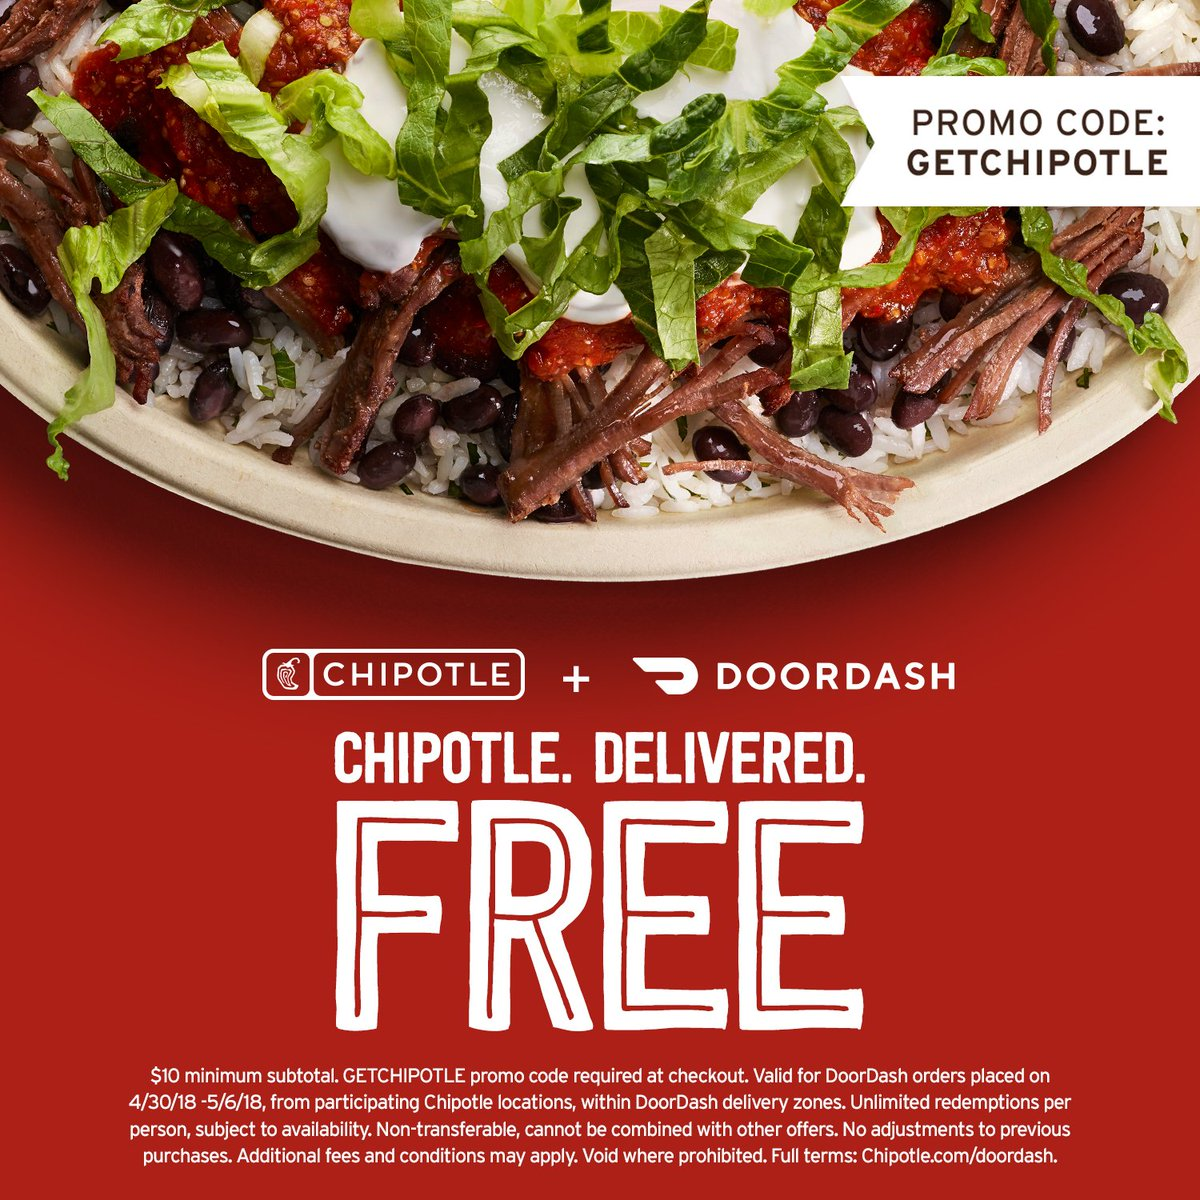 Exceptional Chipotle On Burritos Come When Order Chipotle 24 Hours Near Me Chipotle Locations Near Me Dc Bring It Chipotle On Burritos Come When Order Ormore On From To nice food Chipotle Locations Near Me